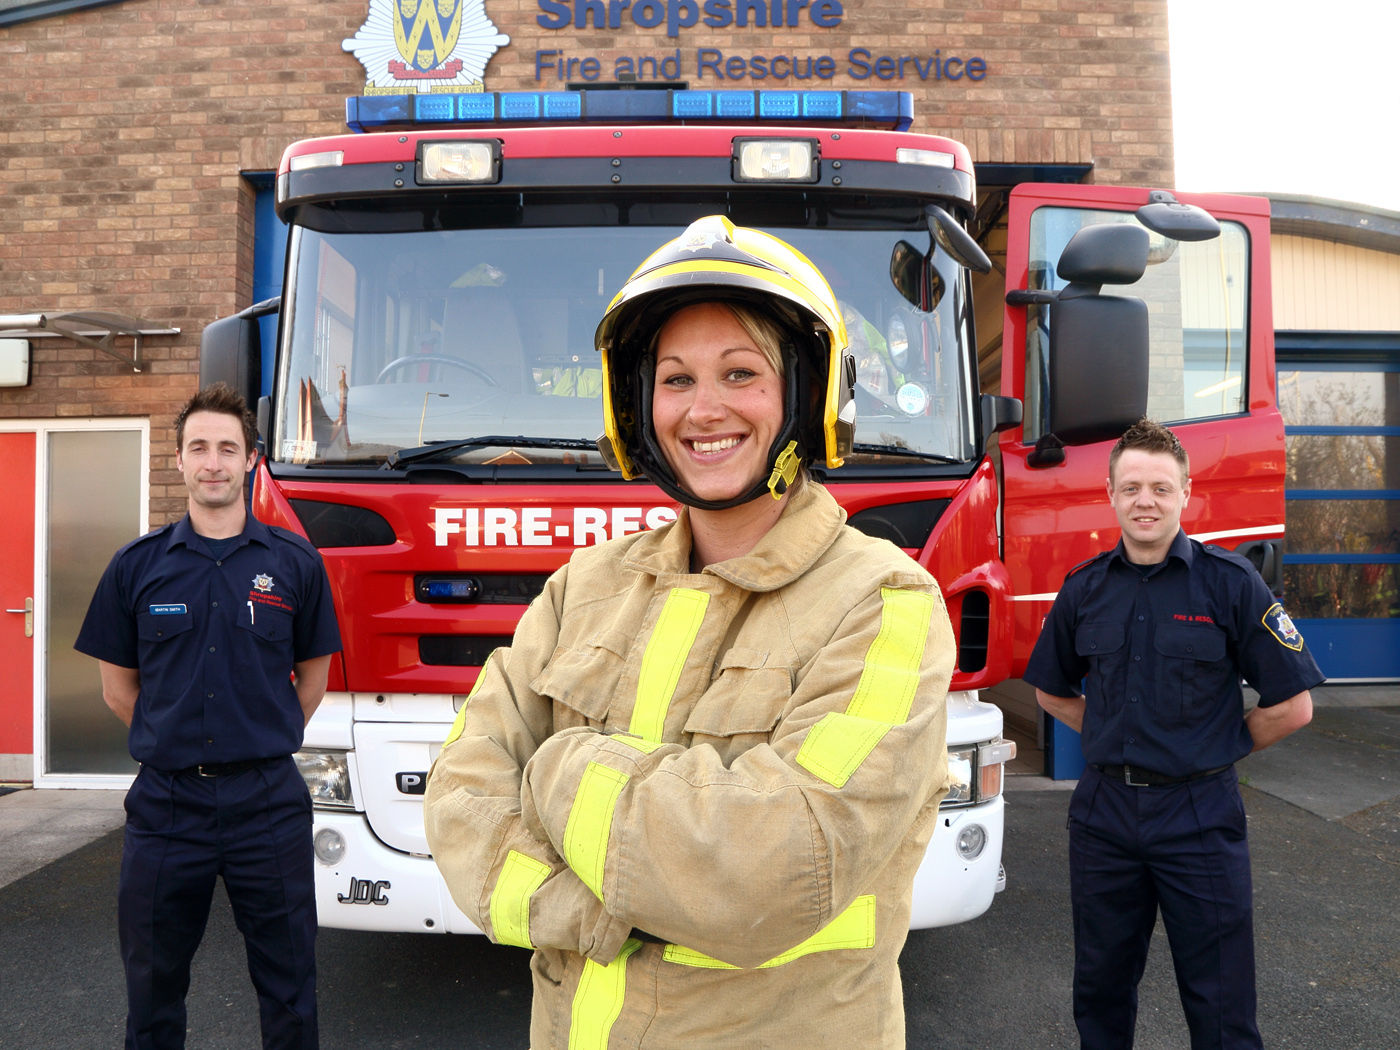 Women Who Want To Be Firefighters | Shropshire Fire and ...